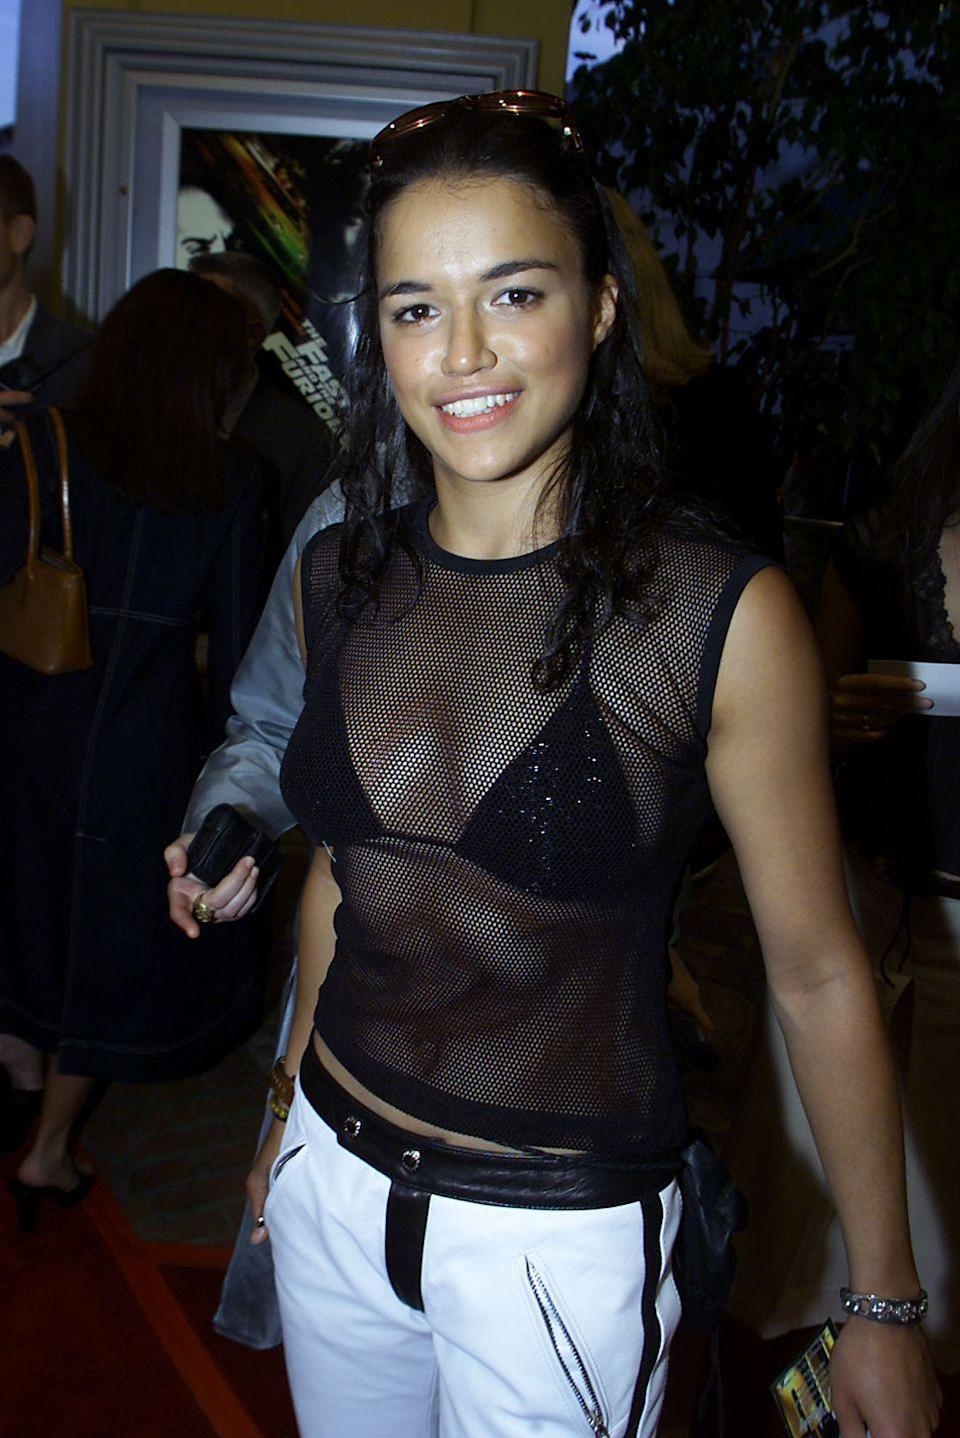 <p>Michelle Rodriguez was a relatively unknown actress when she appeared as Letty Ortiz in first <em>The Fast and the Furious.</em> Here, the young actress is photographed attending the premiere of the film in 2001. </p>